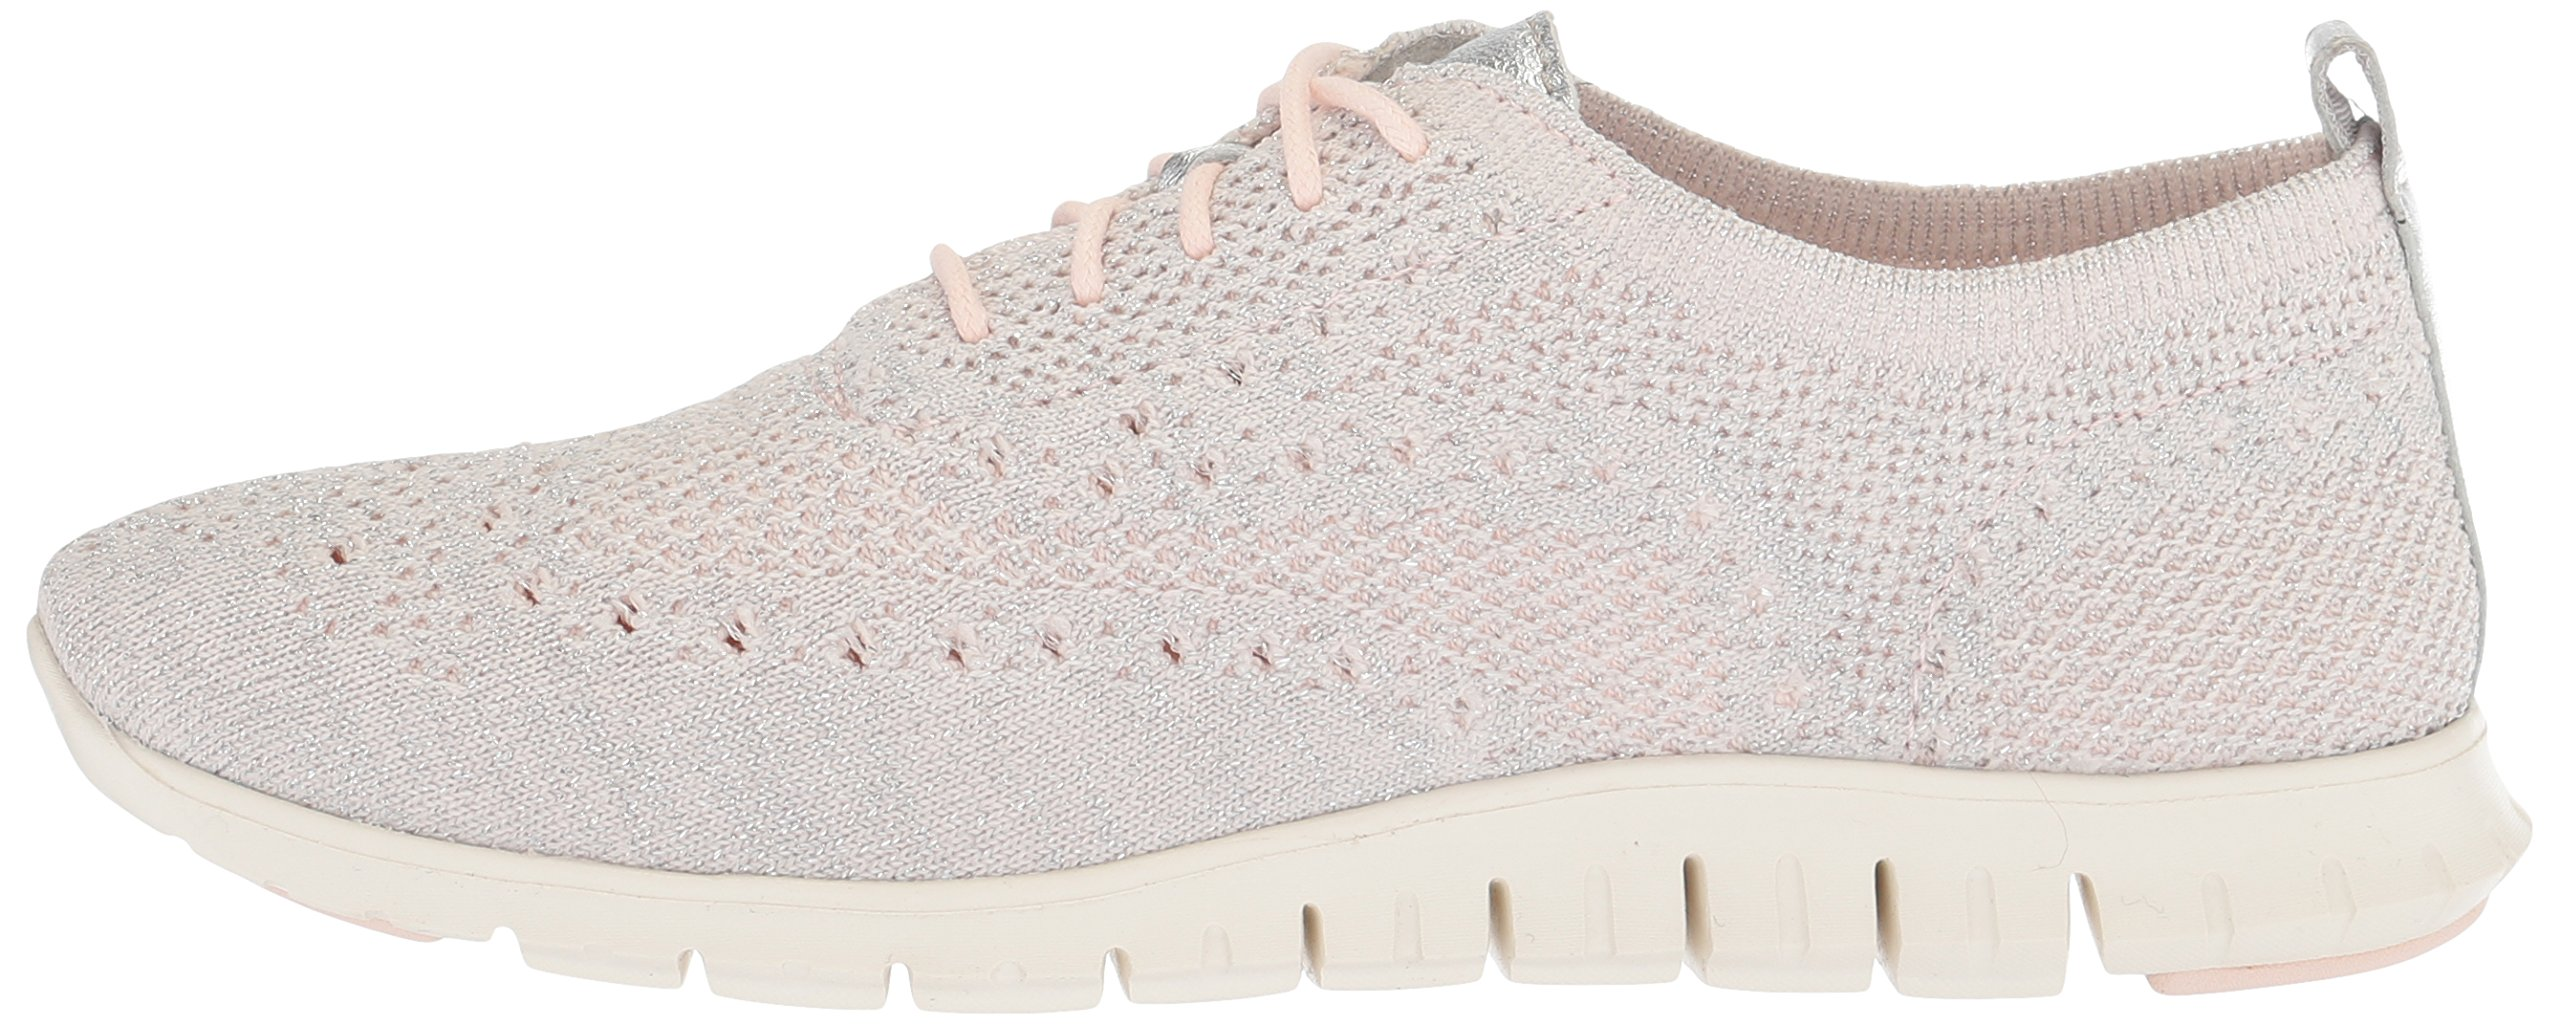 Cole Haan Women's Zerogrand Stitchlite Oxford, Peach Blush, 8.5 B US by Cole Haan (Image #5)